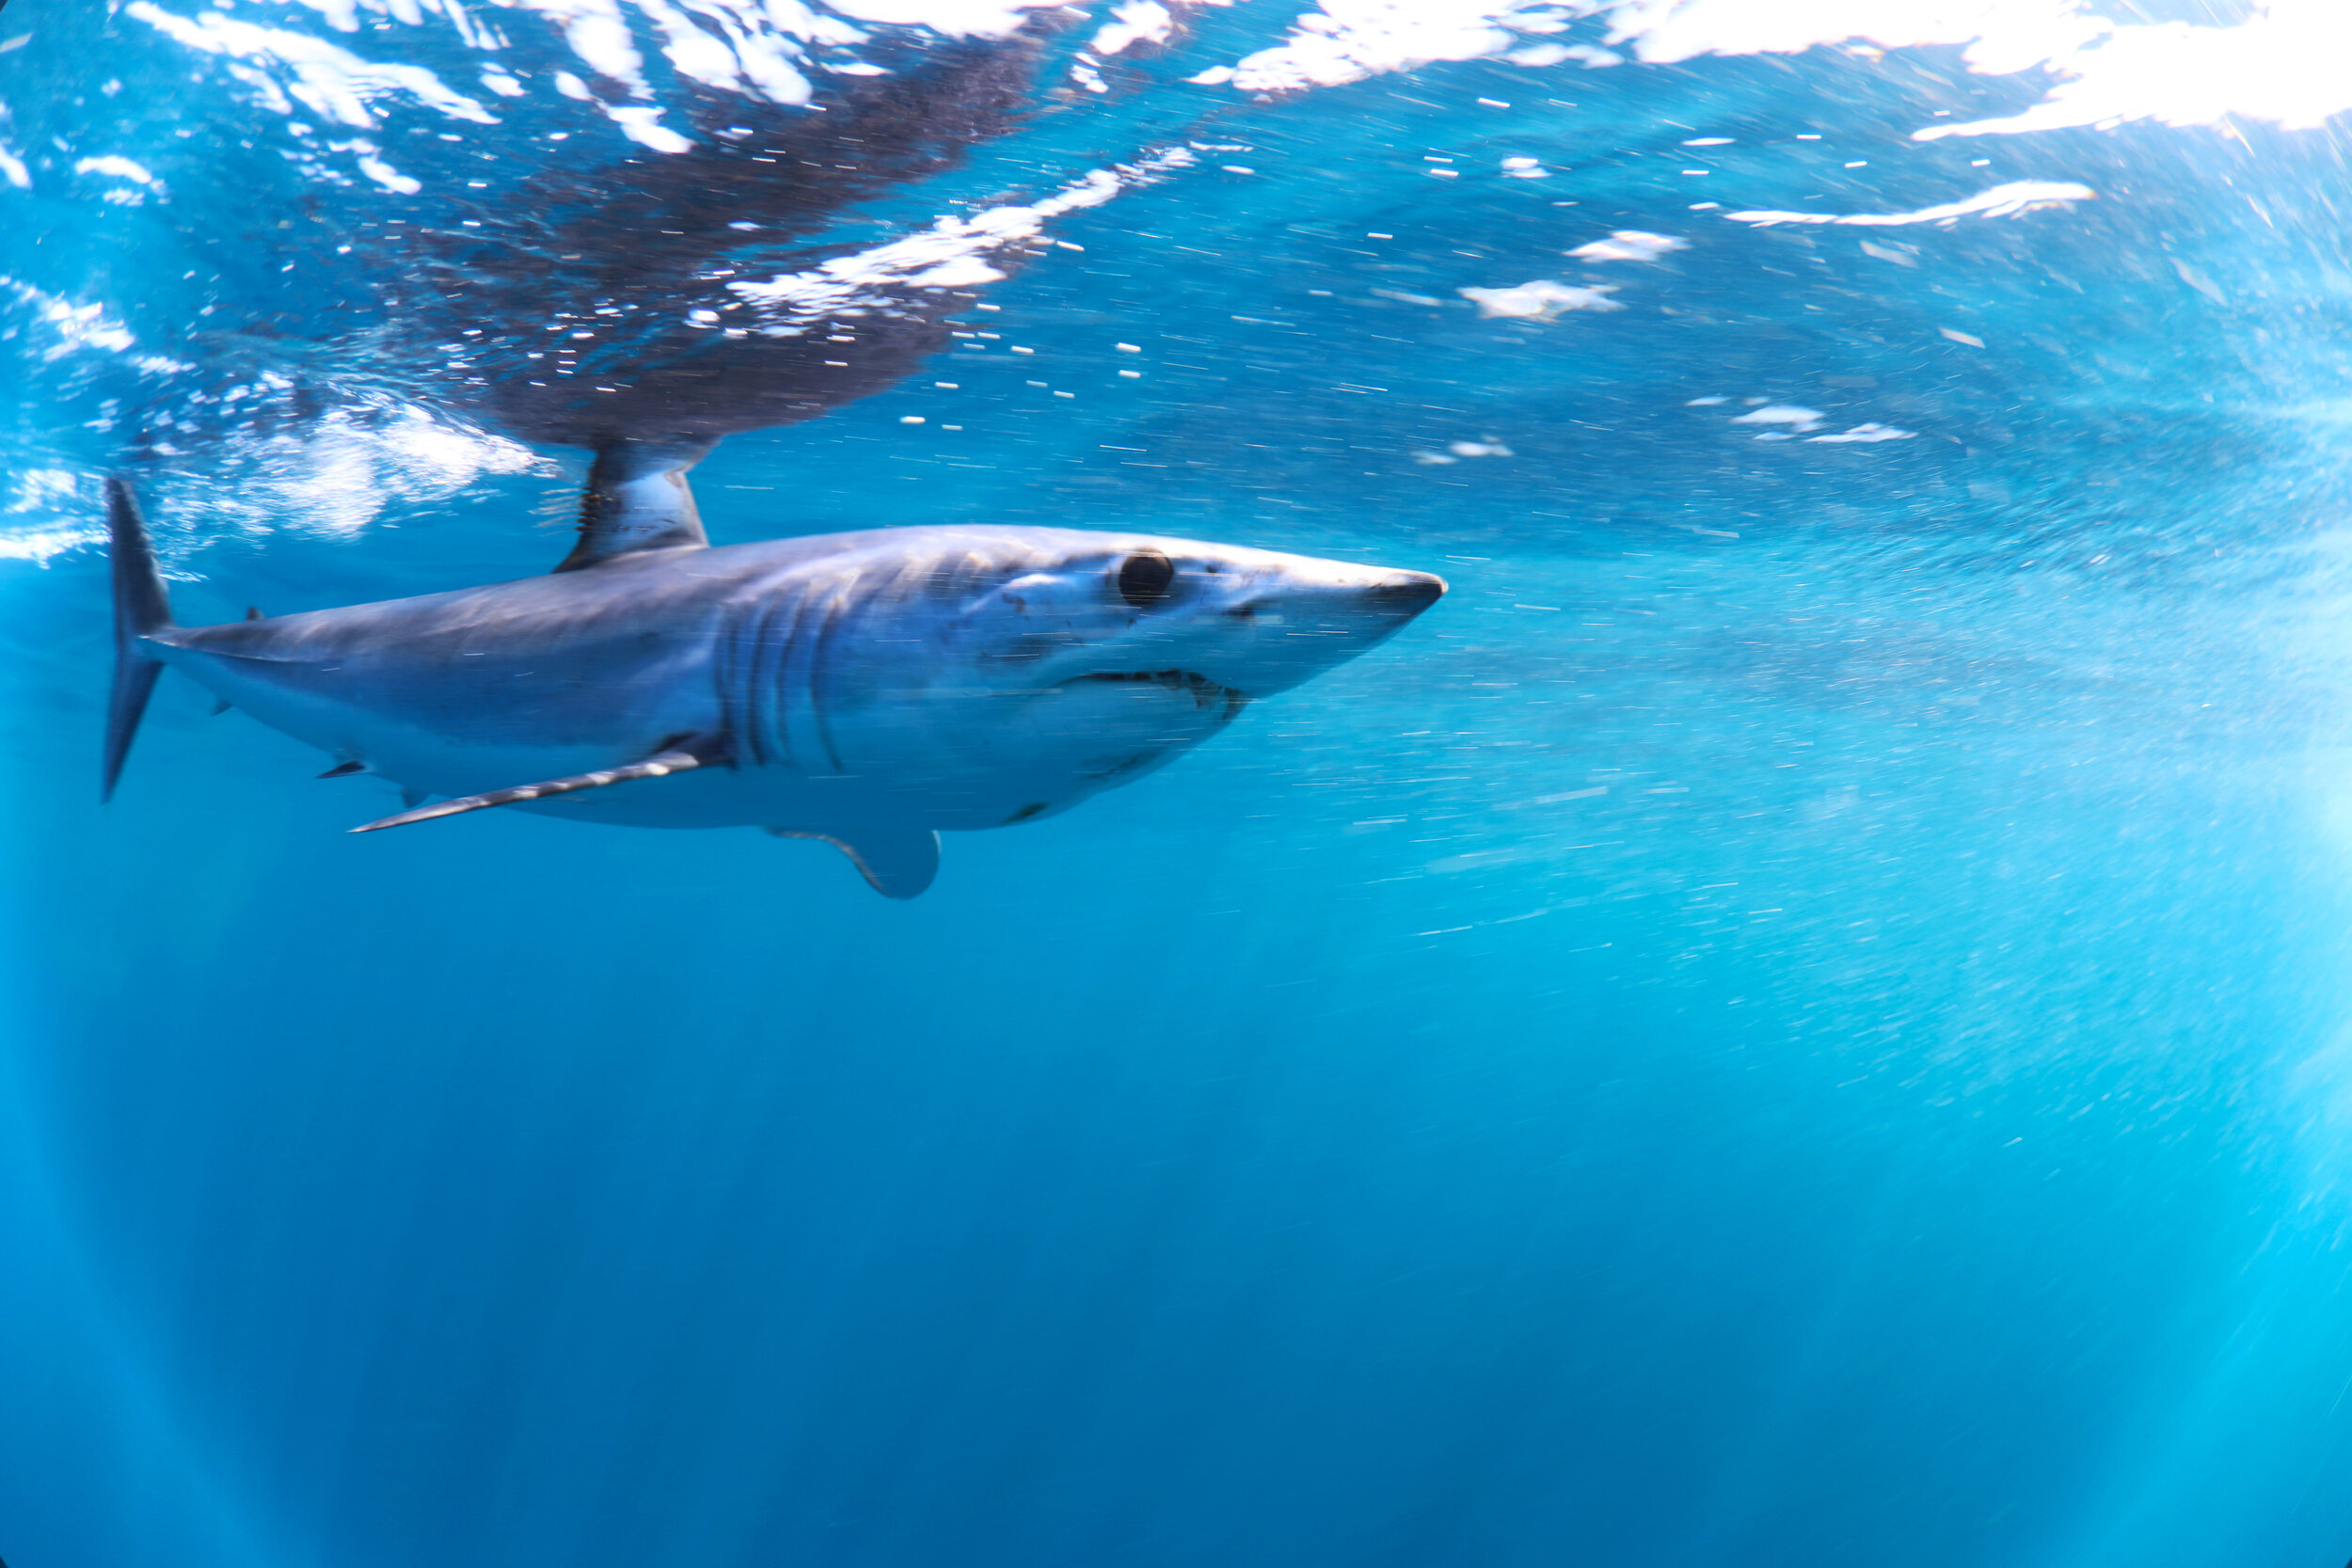 Mako Shark - The Silent Hunter - Discovery Channel - Shark Week -  Shark - Sharks - Mexico - Cabo - Shark Diving - Dr Tristan Guttridge - Annie Guttridge .jpg